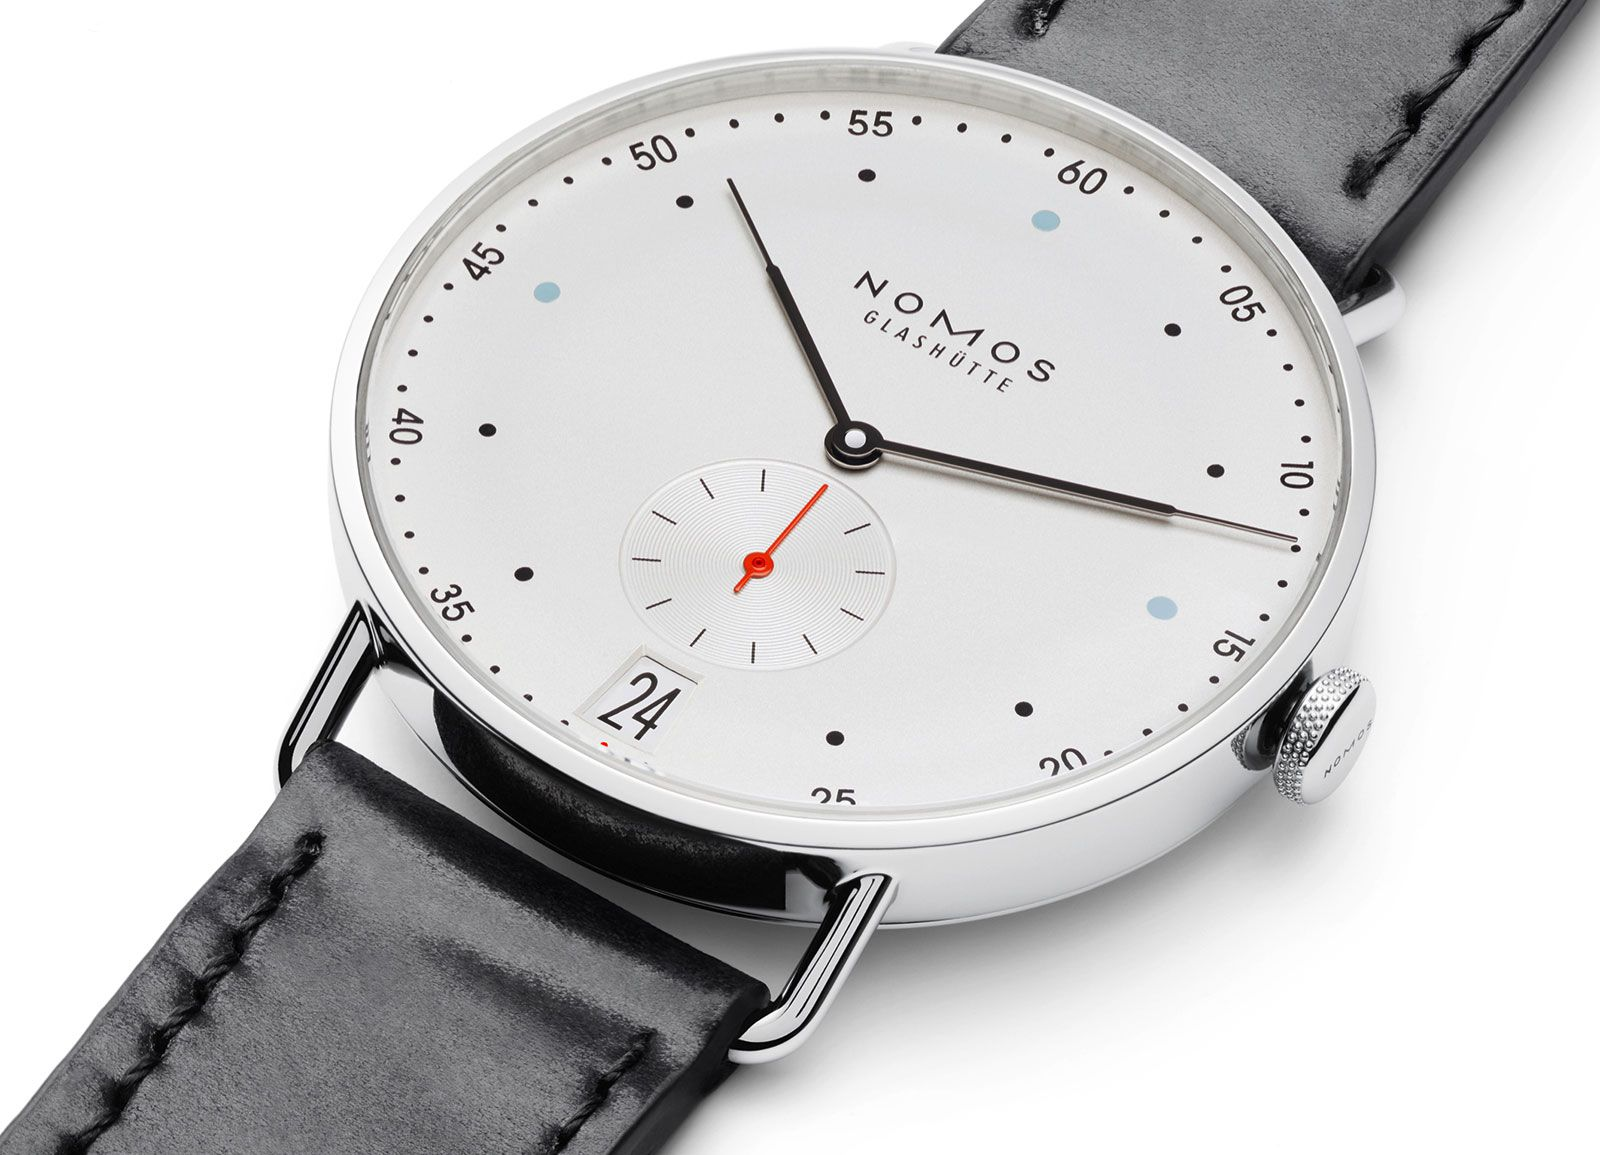 Watches by SJX: Introducing The Nomos Metro 38 Datum, Now In A Lar...